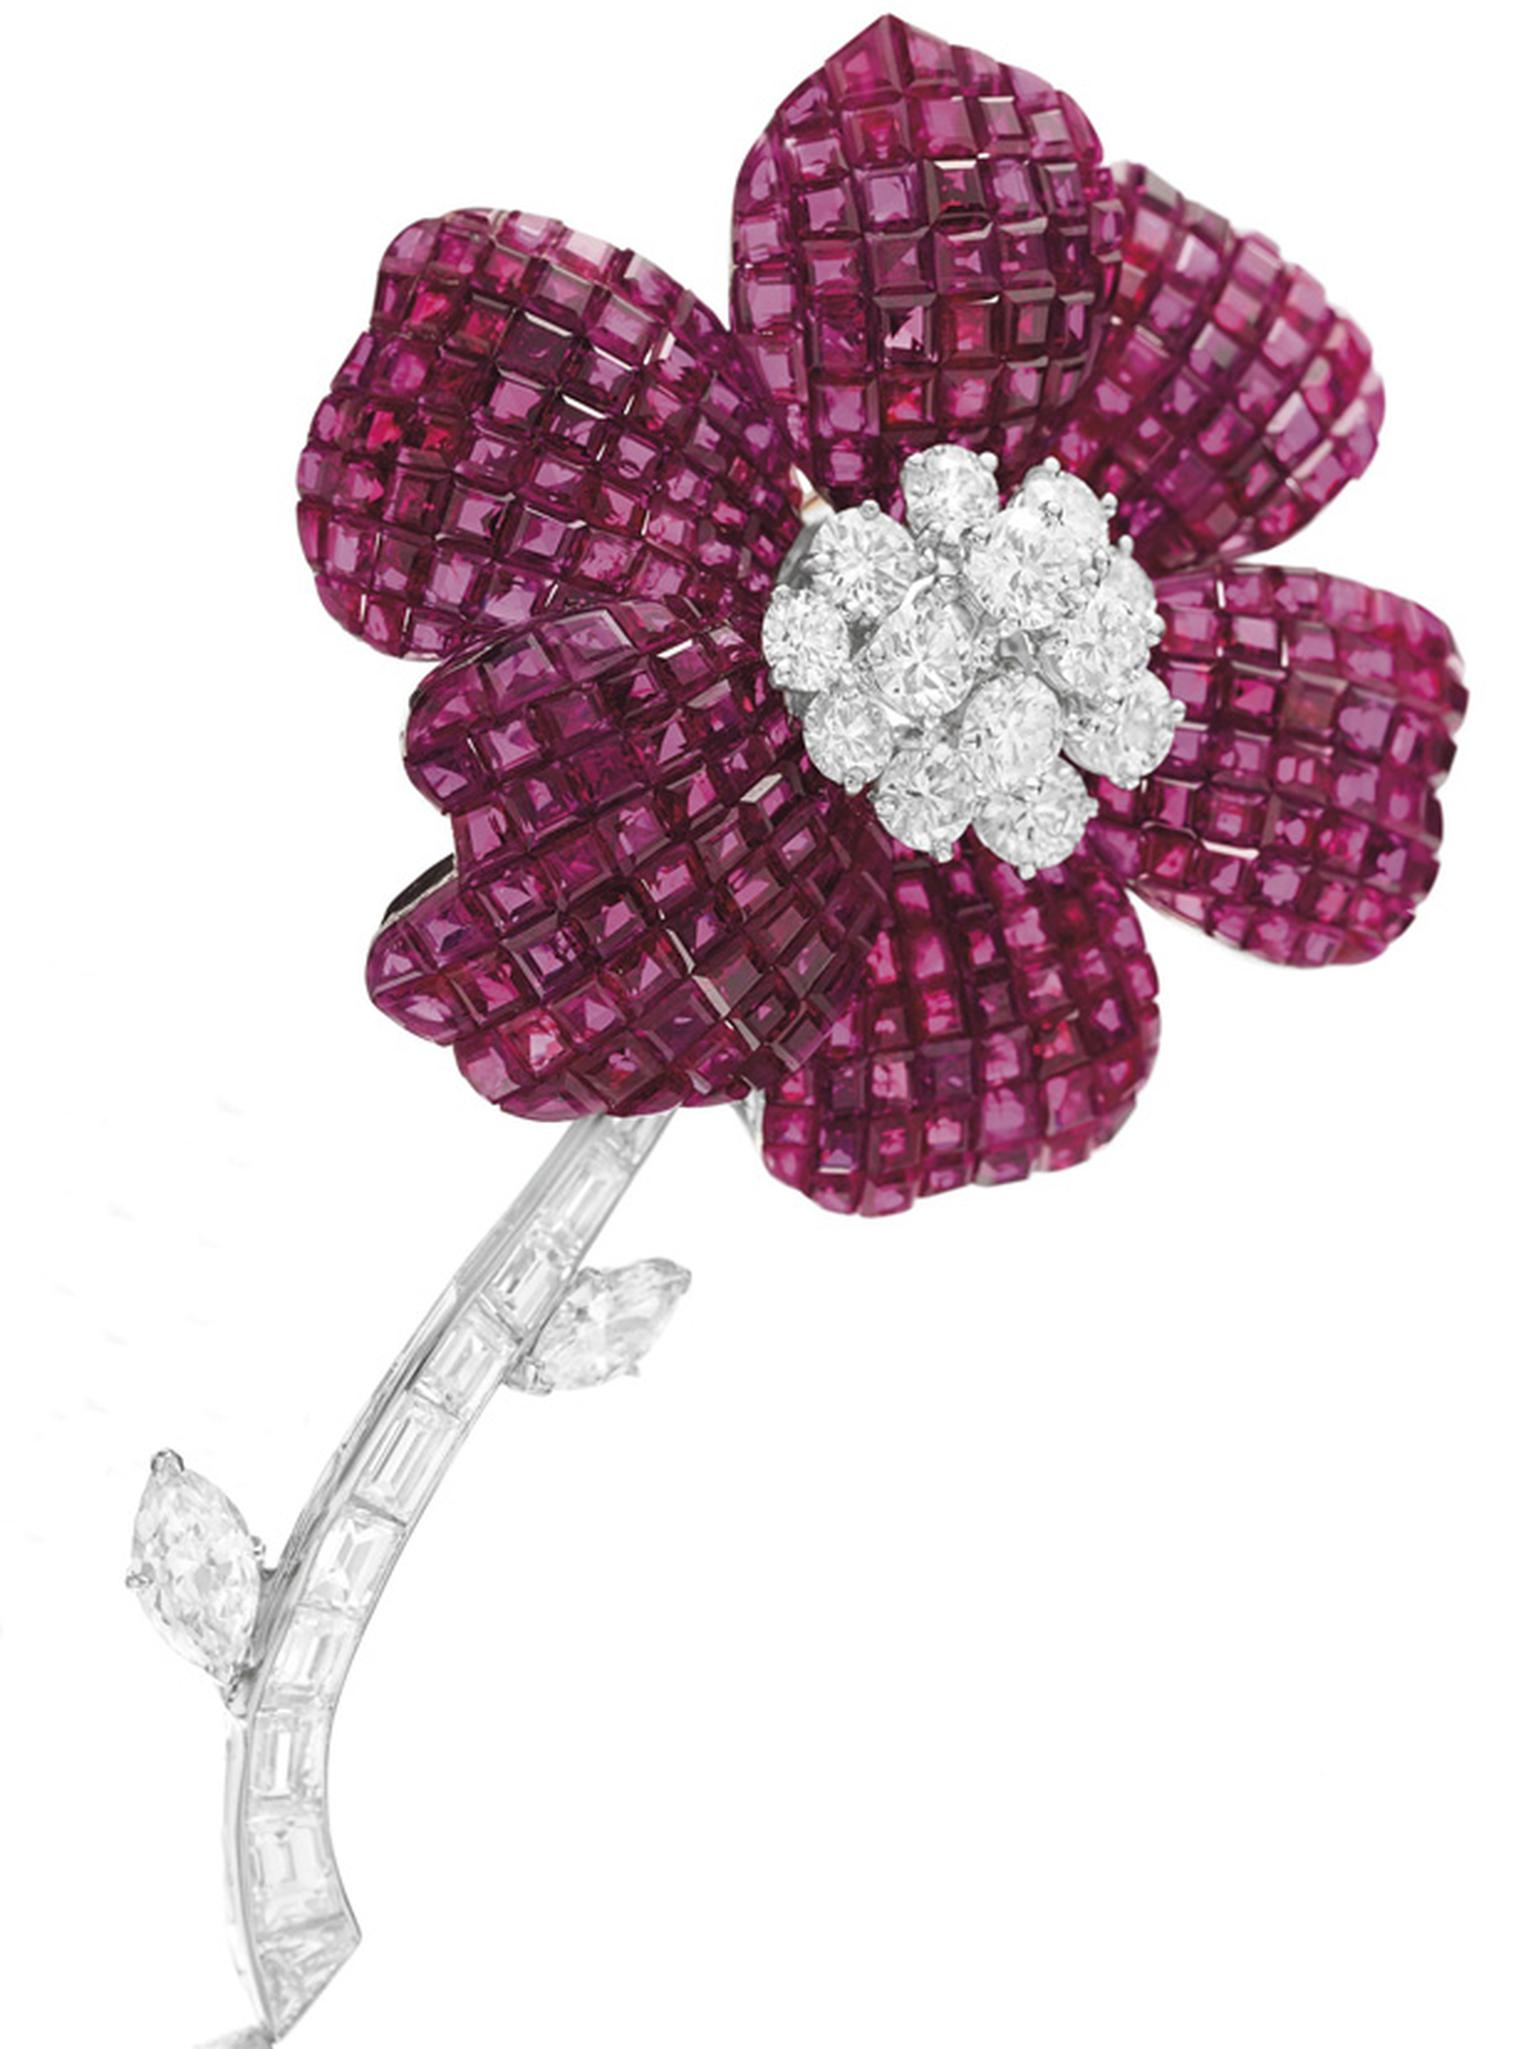 Van Cleef & Arpels Mystery Set ruby and diamond Pavot flower brooch circa 1974